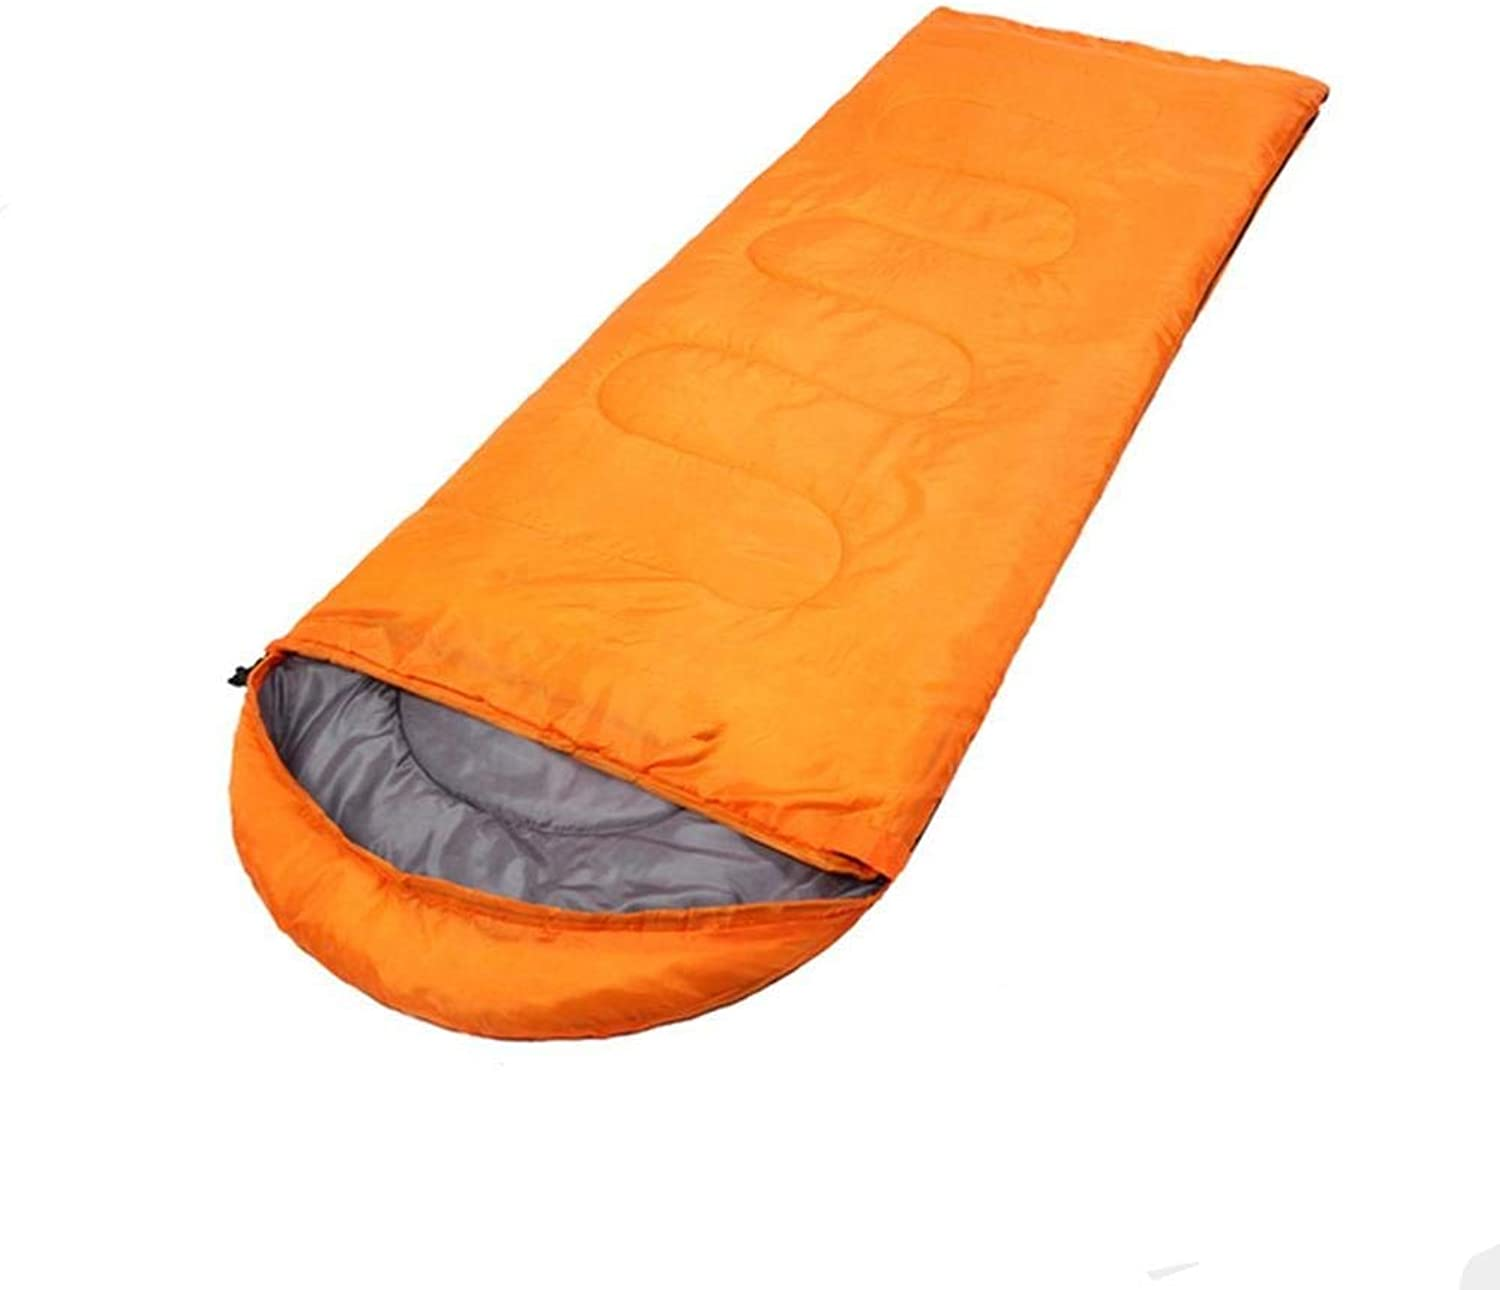 Sleeping Bag Adult Camping Equipment Sleeping Bag Windproof Warmth Hooded Practical Convenient Comfortable Lightweight Hiking Camping Sleeping Bag